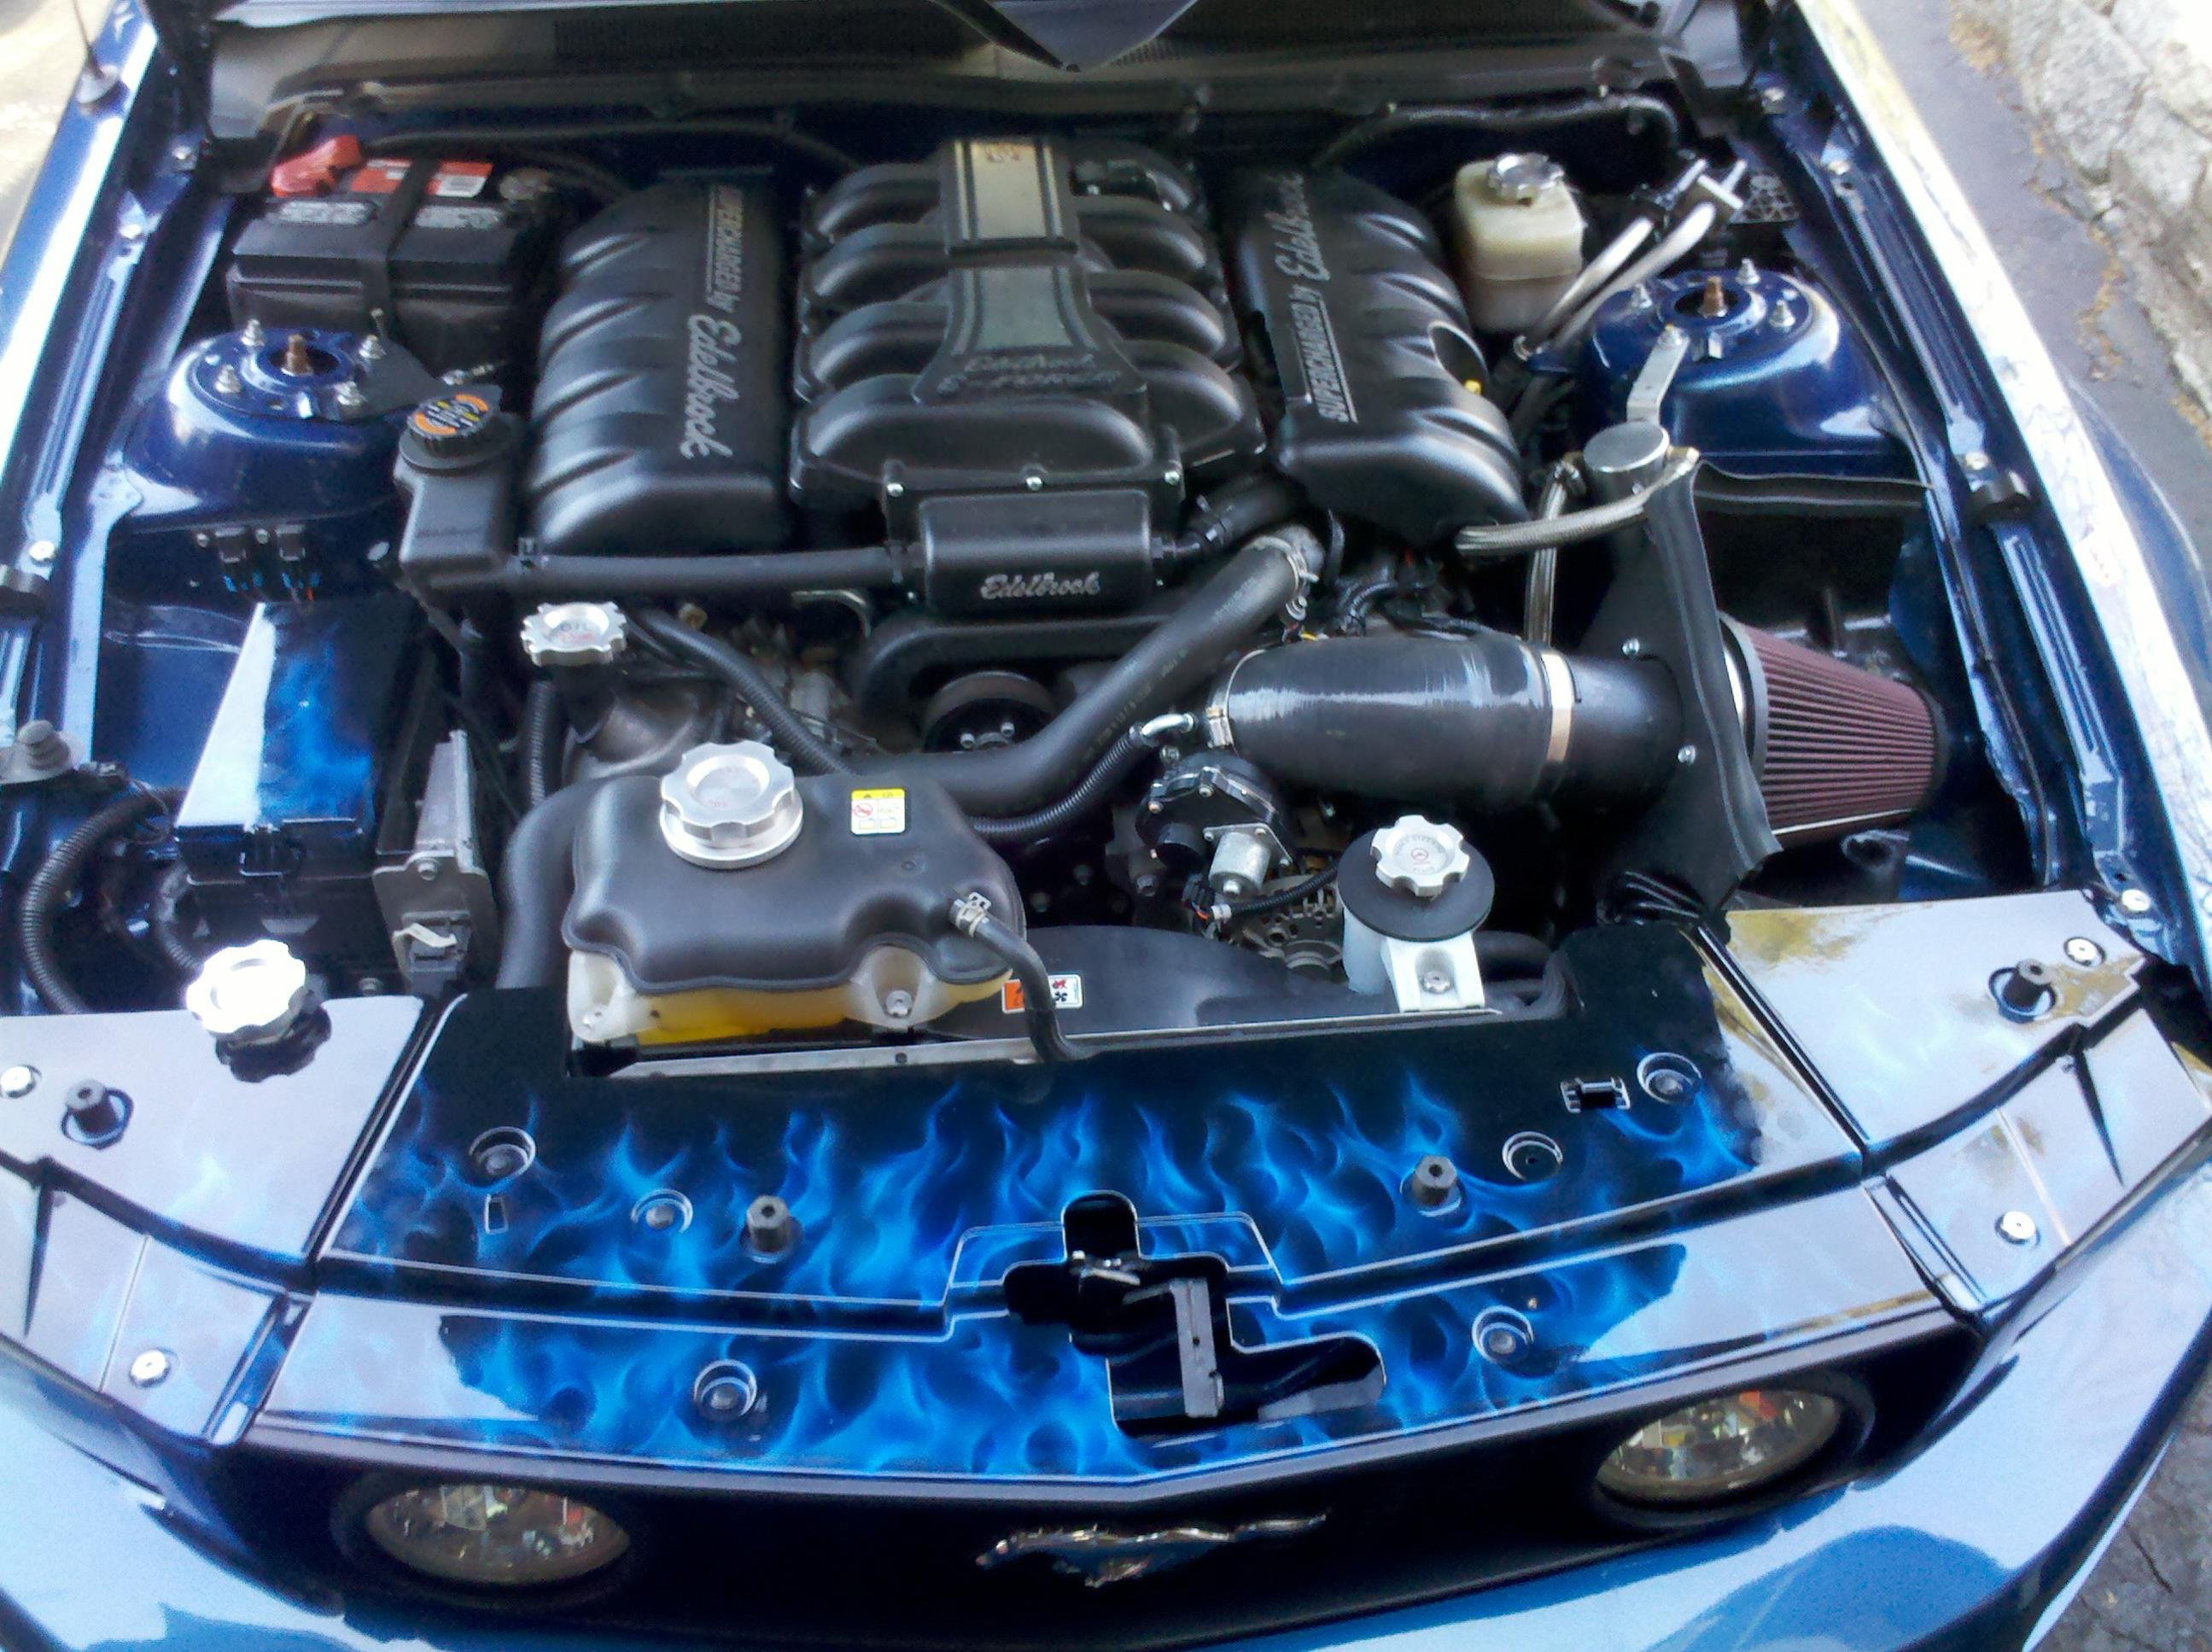 Airbrushed Flames Underhood Pics  2007 Mustang Gt